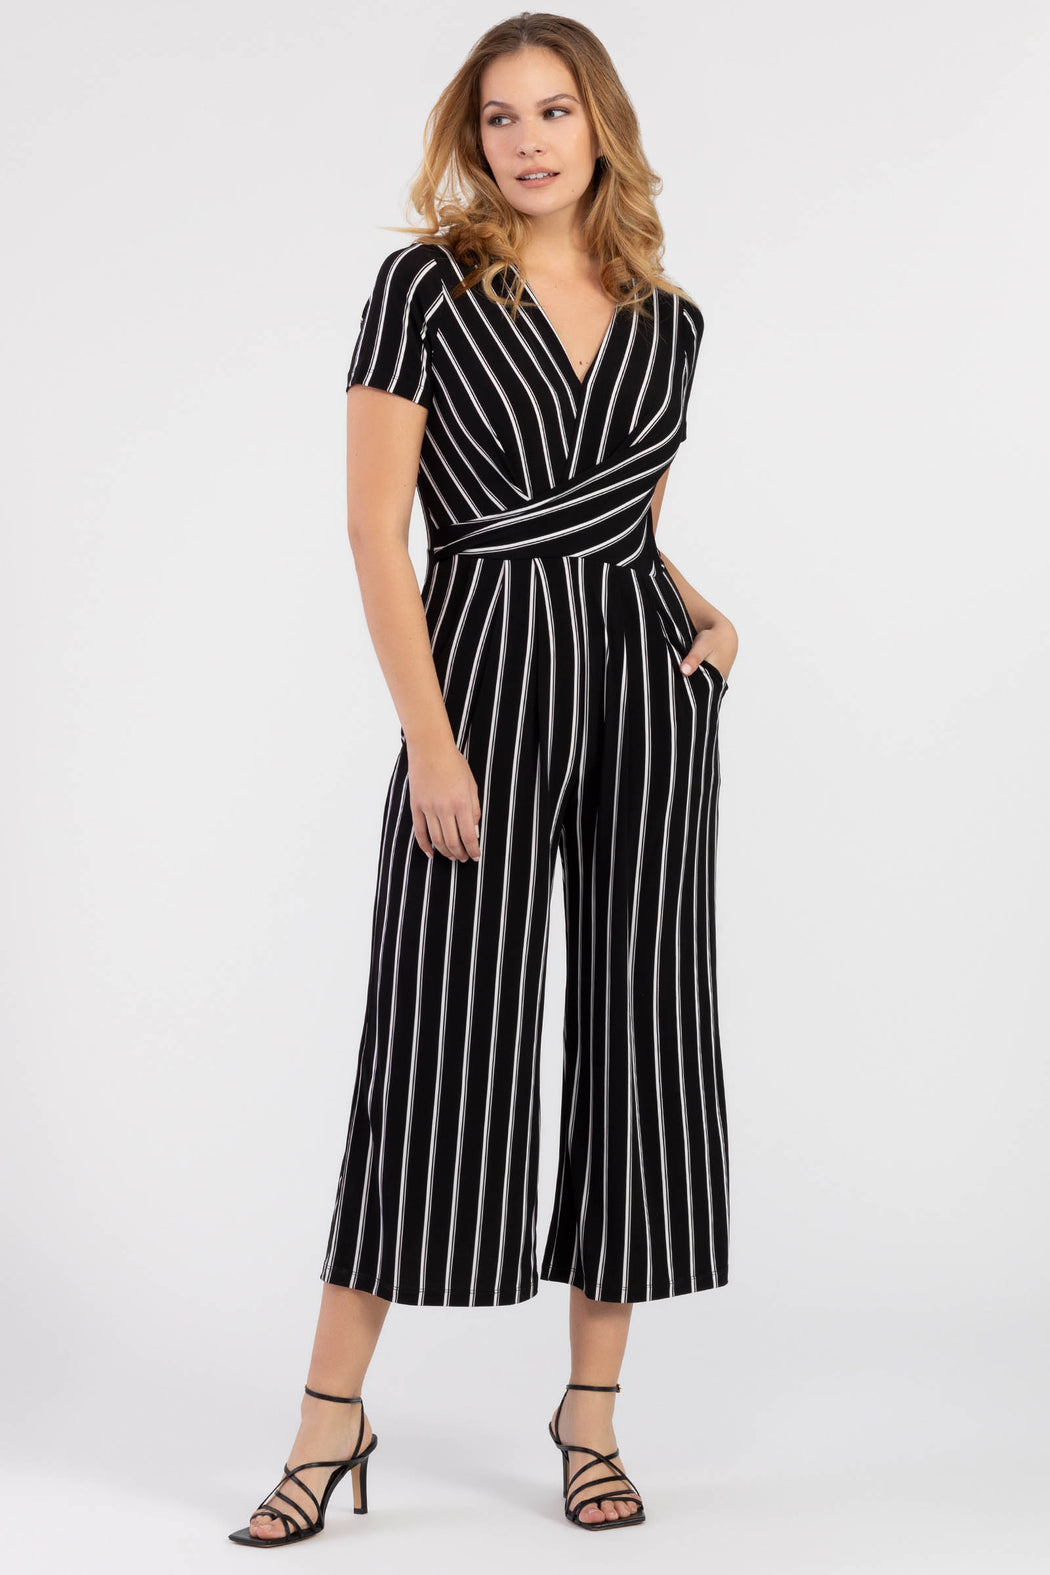 Consider this your 2020 summertime staple! This incredibly soft short sleeve faux-wrap jumpsuit looks fantastic on all sizes, hugging you in all the right places. Features a v-neck cut and slouched wrap gathered details, front pockets, and a concealed back zip, this striped jumpsuit is a versatile piece that's perfect for the office and the weekend!